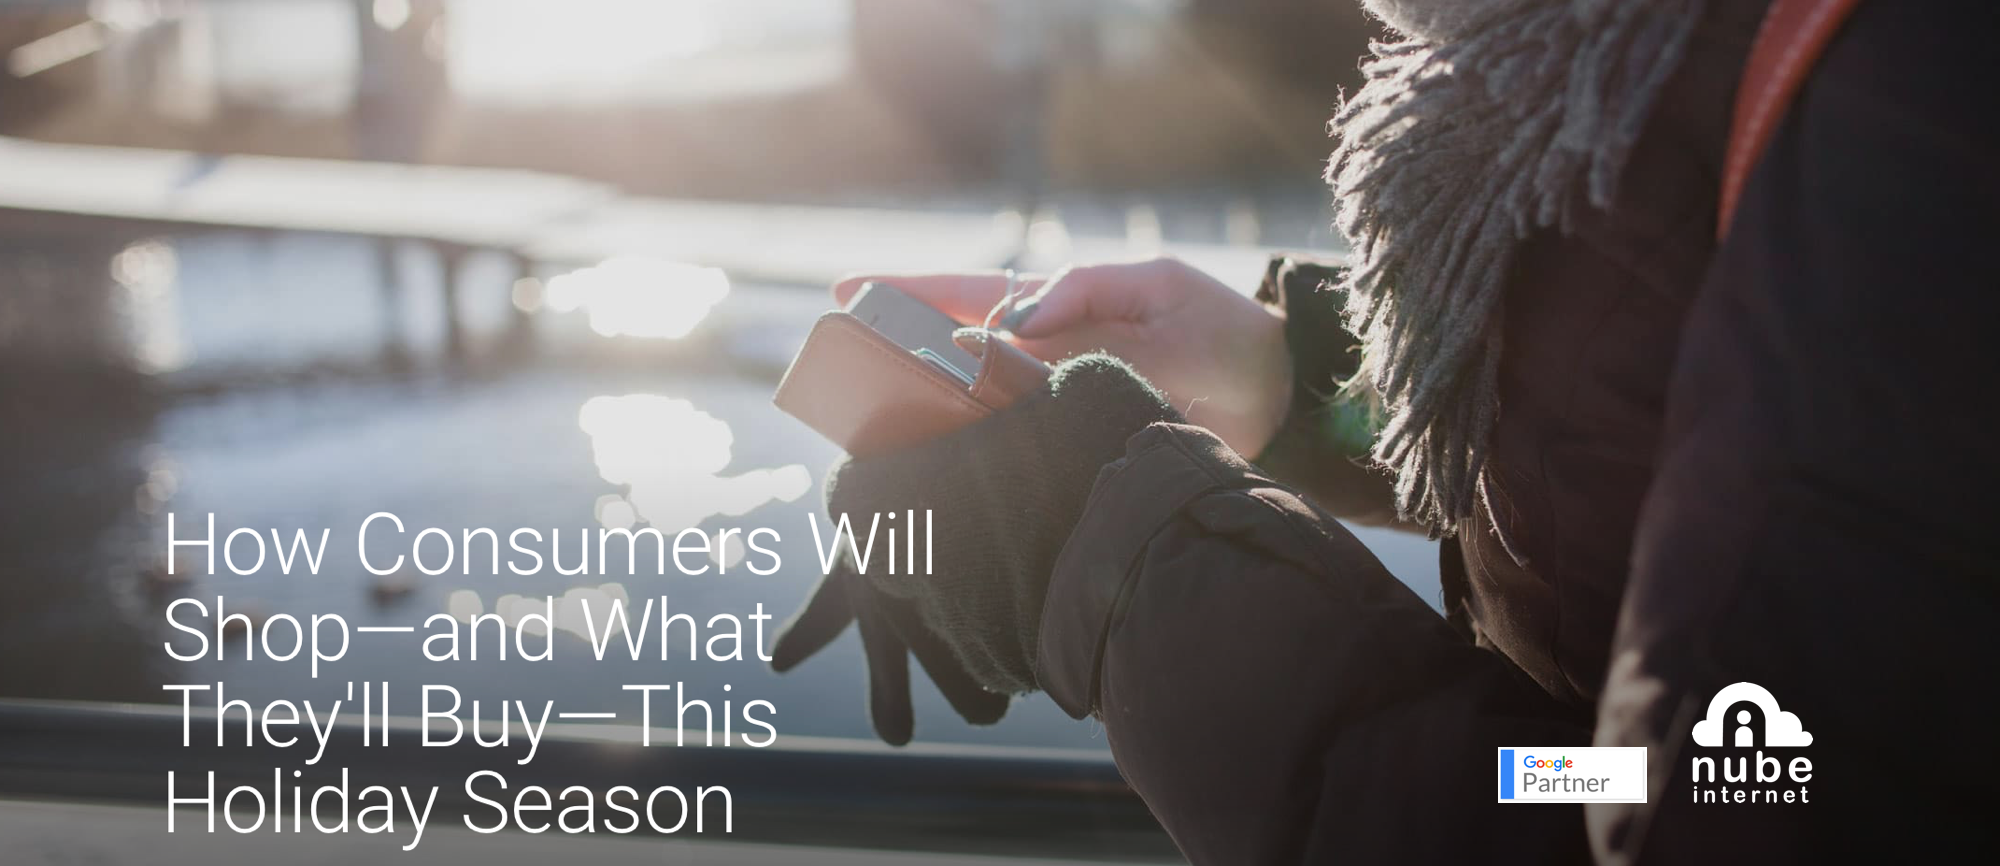 How Consumers Will Shop and What They'll Buy This Holiday Season